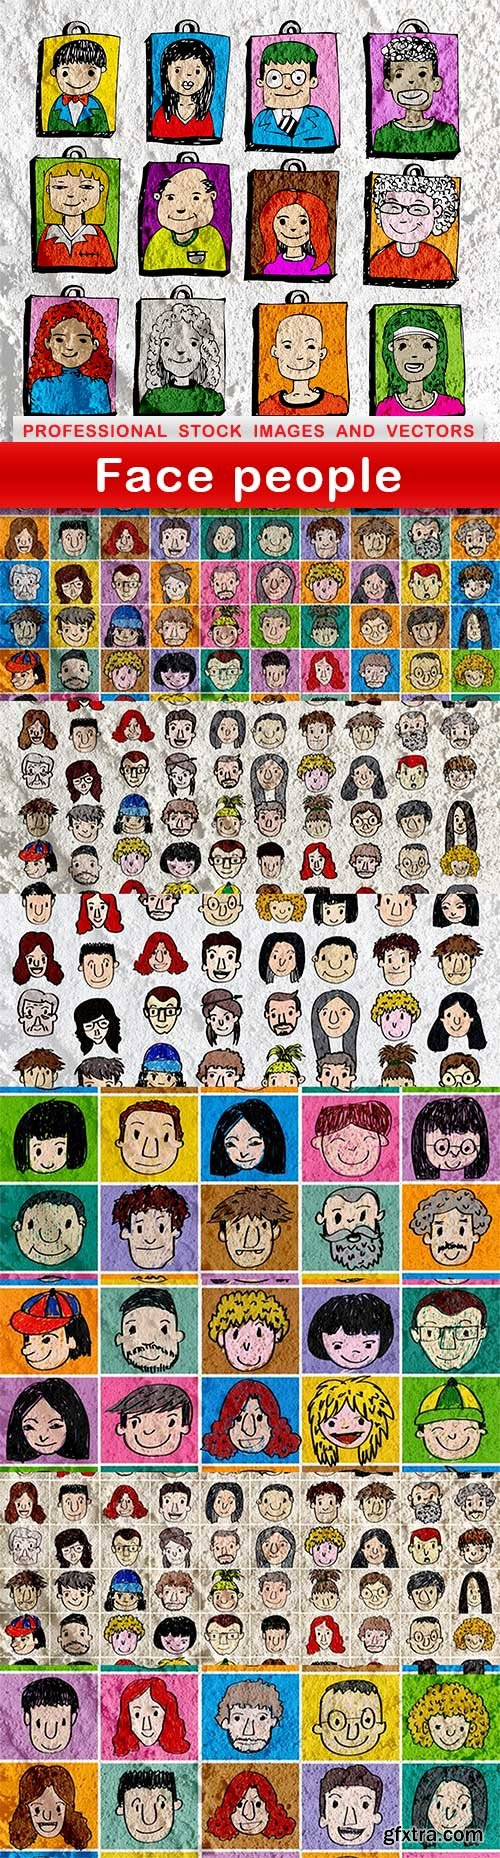 Face people - 8 UHQ JPEG